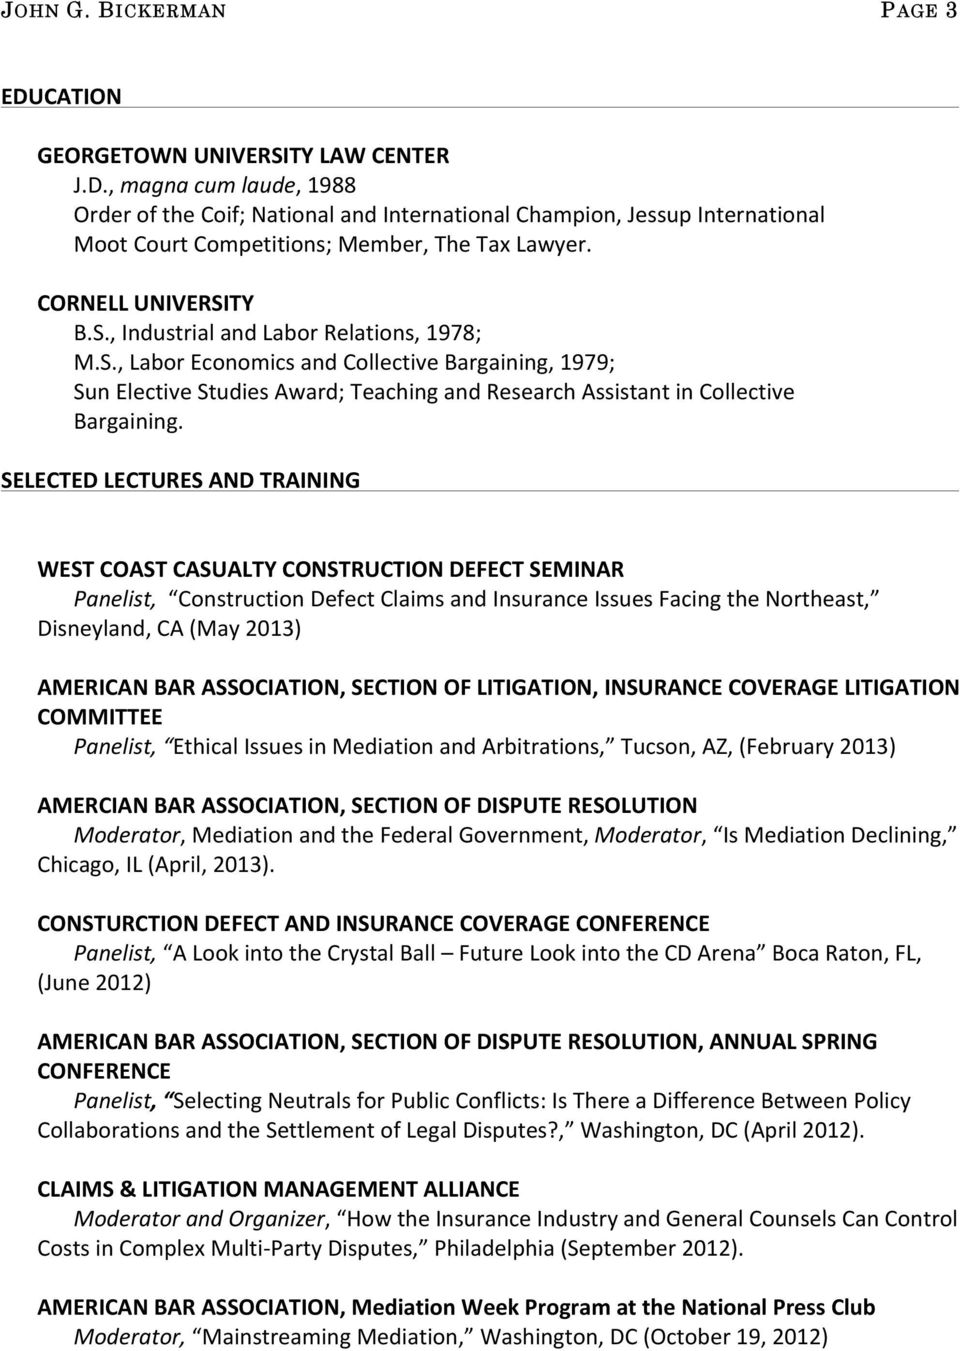 SELECTED LECTURES AND TRAINING WEST COAST CASUALTY CONSTRUCTION DEFECT SEMINAR Panelist, Construction Defect Claims and Insurance Issues Facing the Northeast, Disneyland, CA (May 2013) AMERICAN BAR